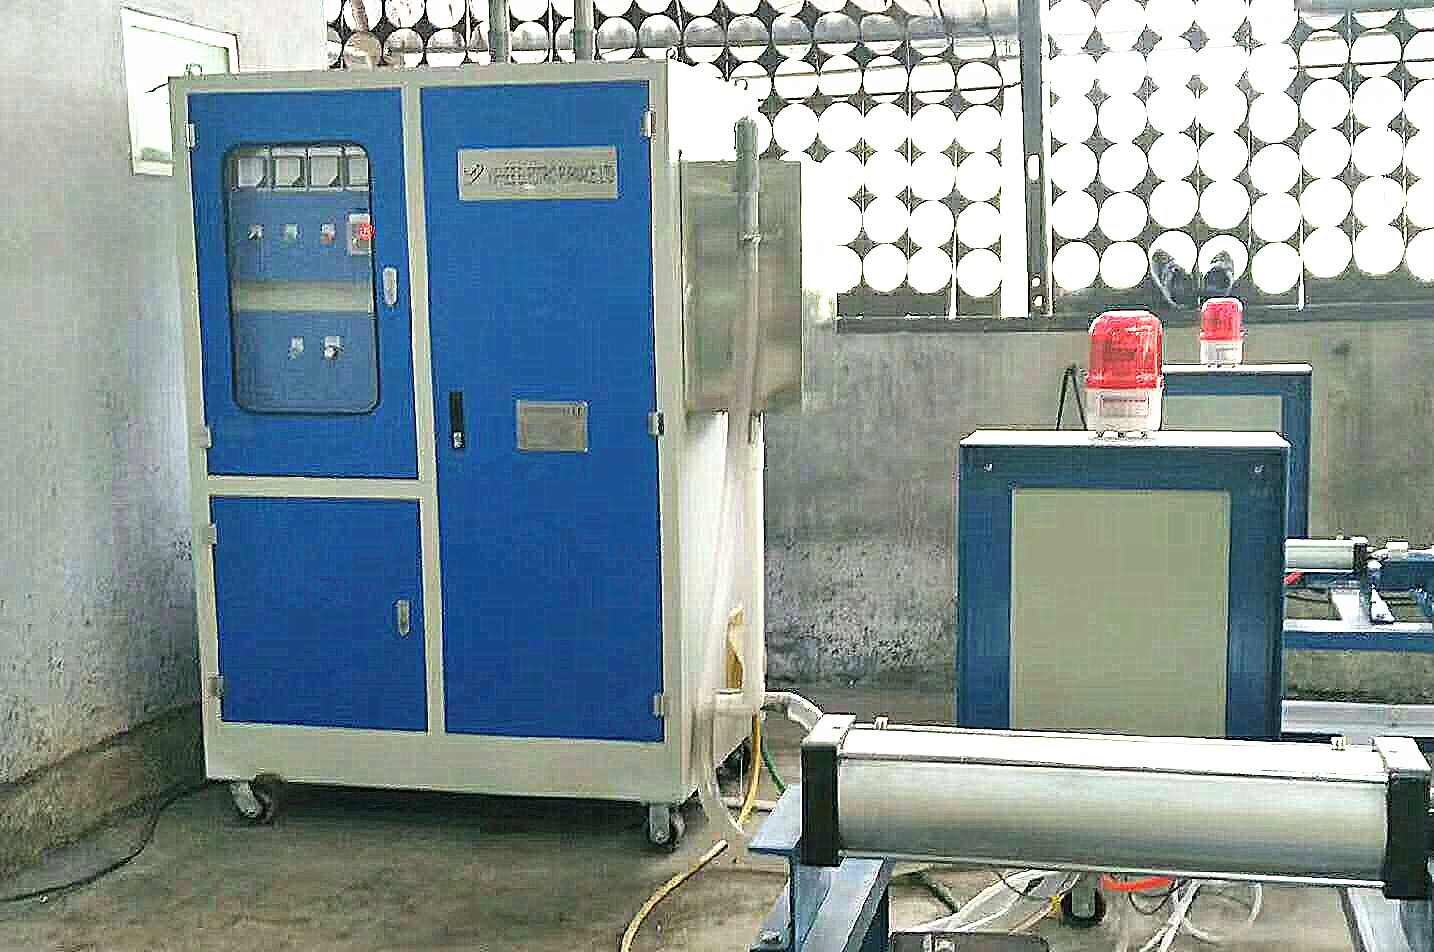 Heat treatment furnace induction furnace